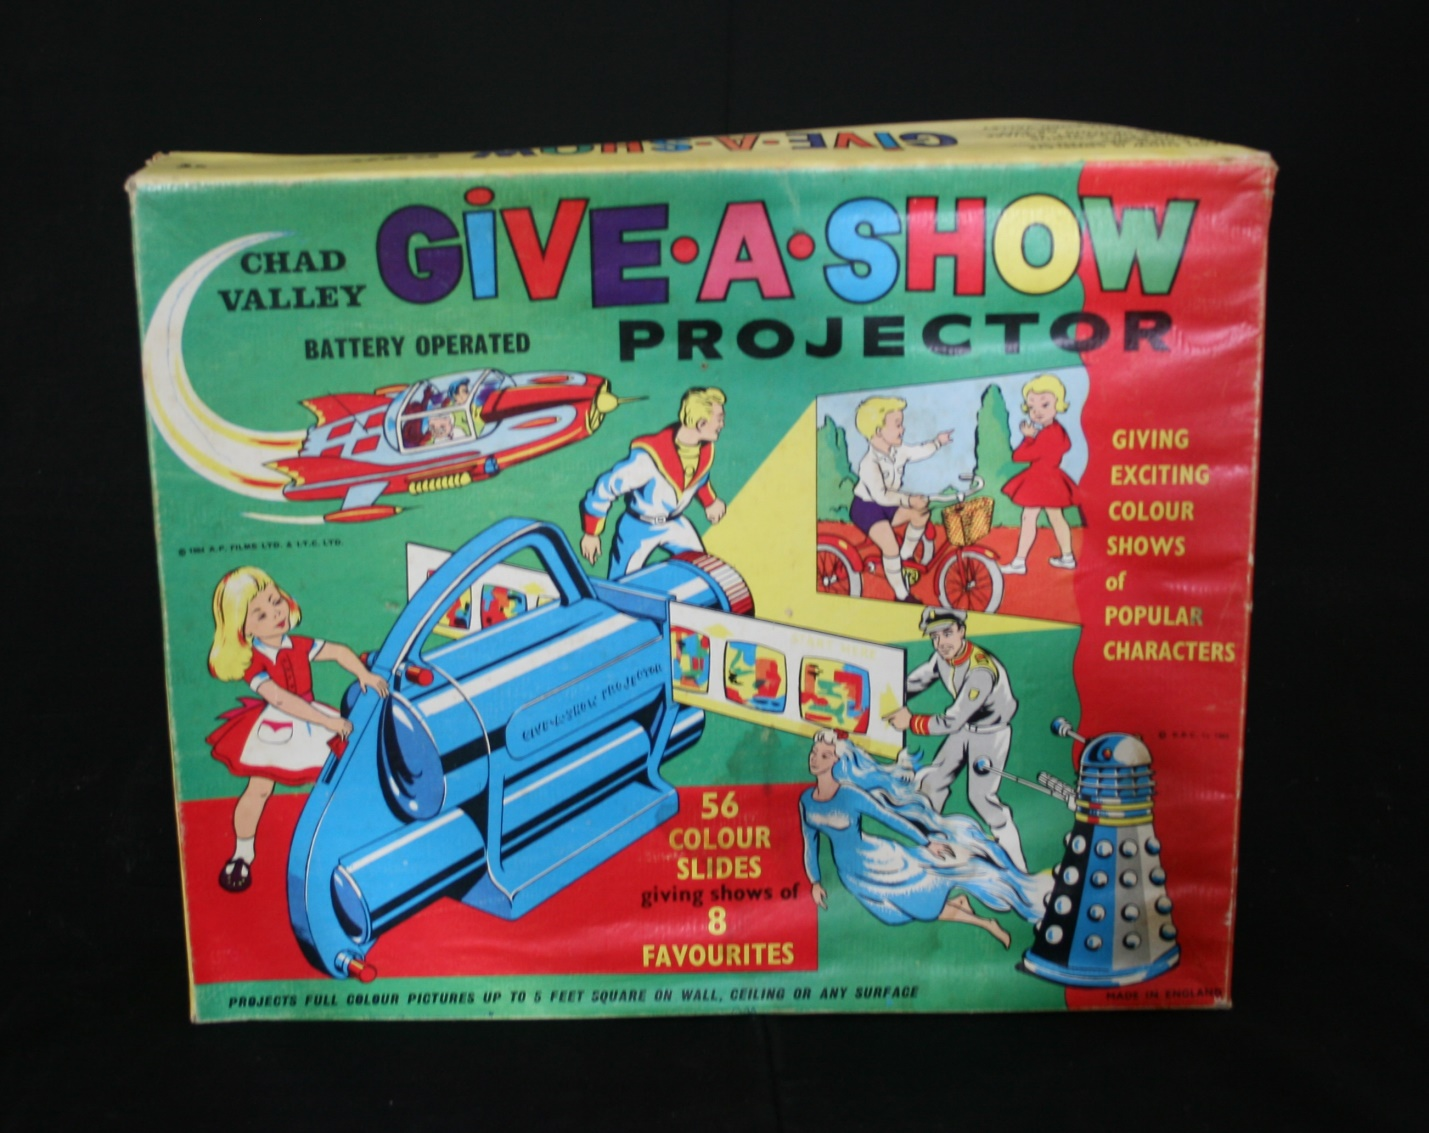 Chad Valley Ltd., Give-A-Show Projector (includes Doctor Who slides and Dalek image on box)